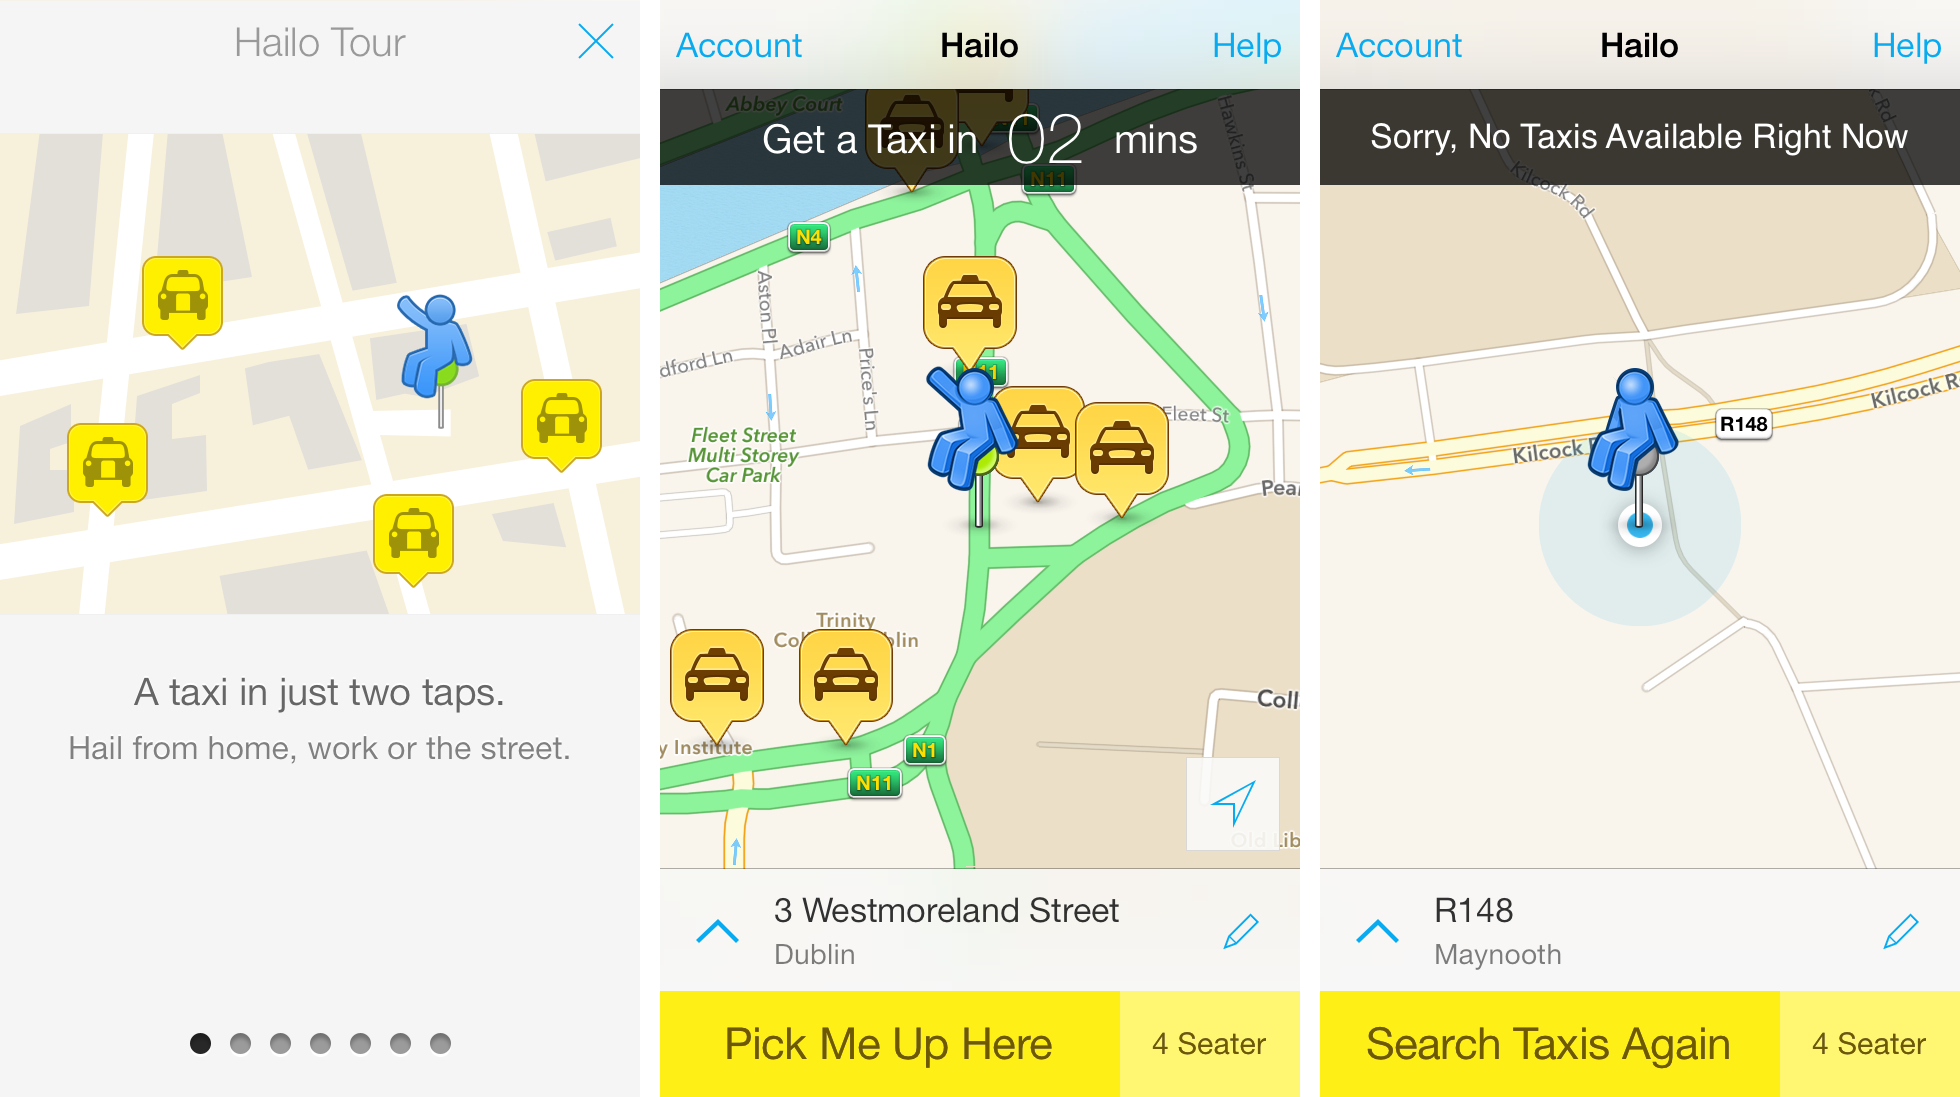 Hailo availability in Dublin versus Maynooth